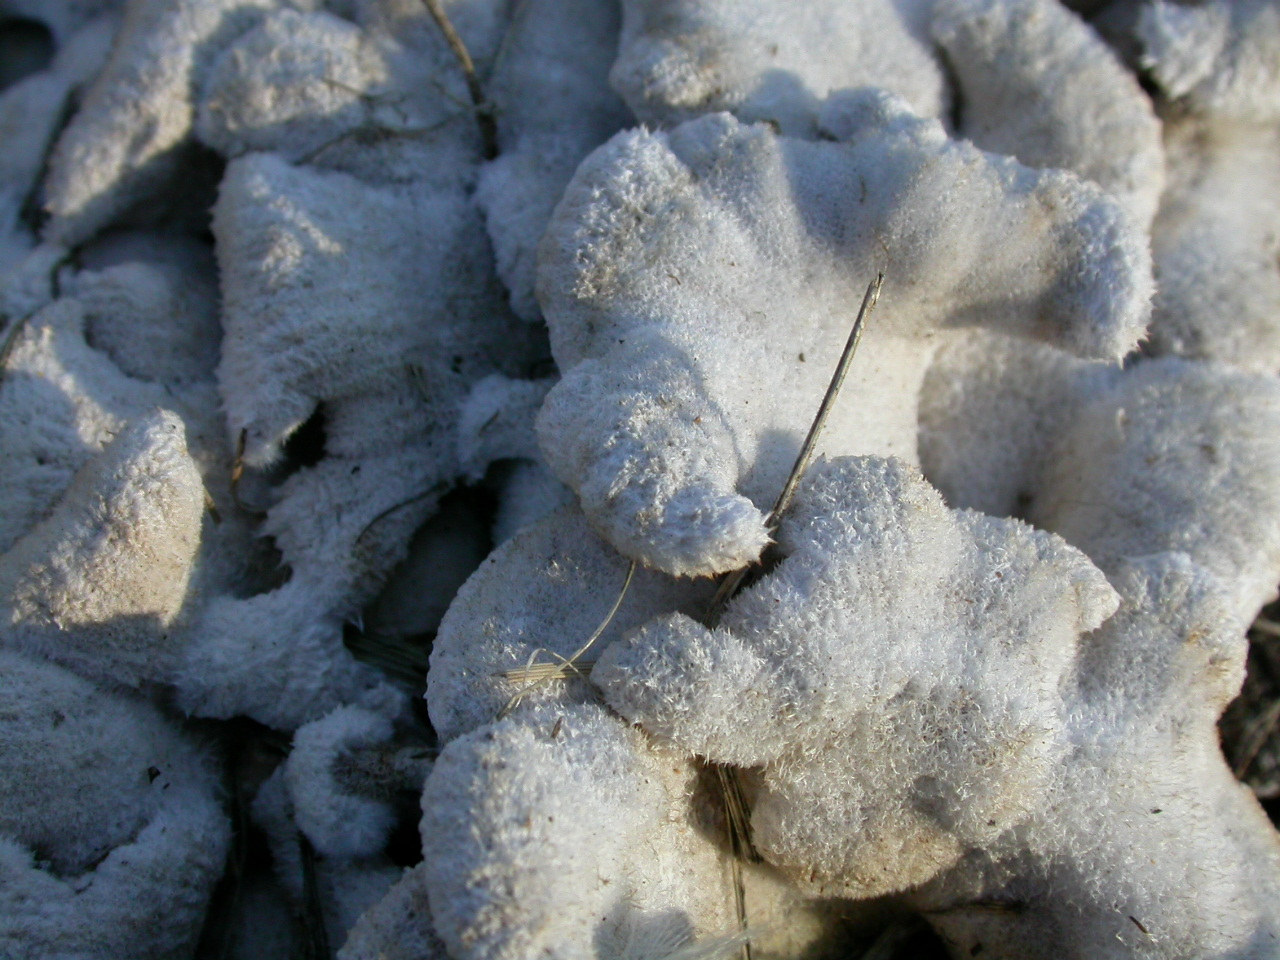 Fungus, Abstract, Furry, Plant, White, HQ Photo